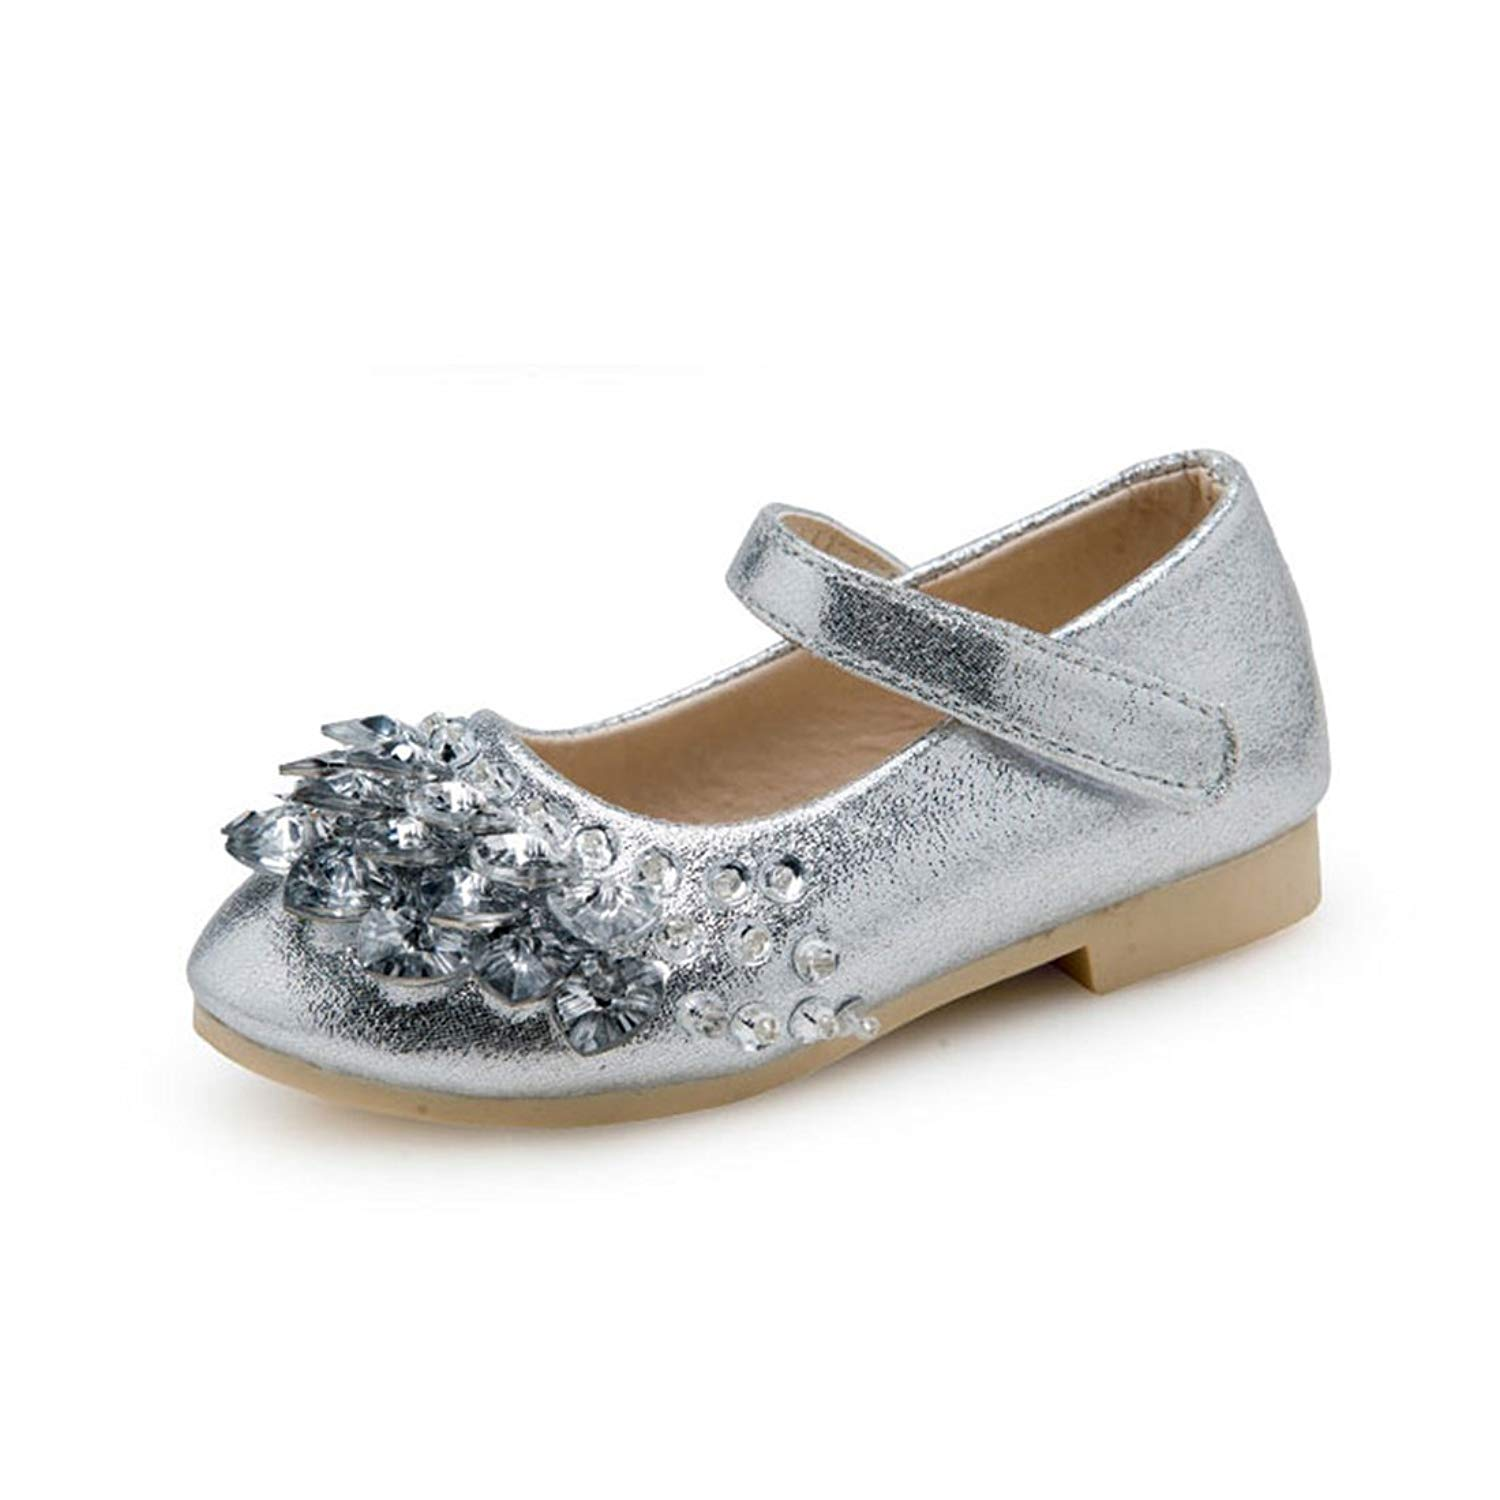 O&N Kids Ballet Flats Beaded Girls School Shoes Mary Jane Wedding Party Princess Dress Shoes